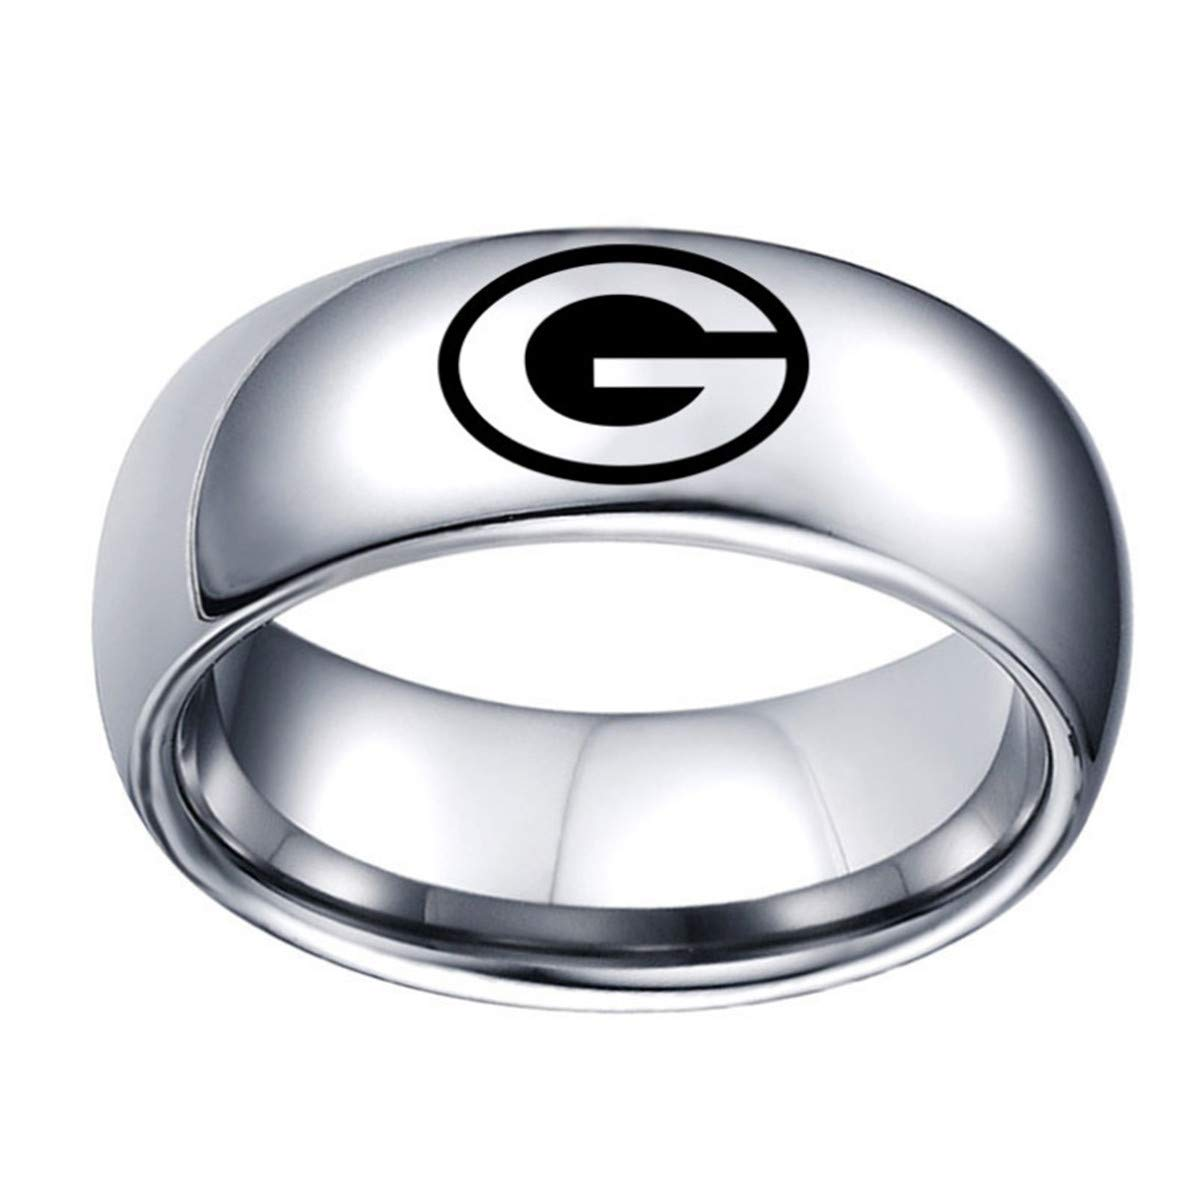 Green Bay Packers Ring Titanium Steel 8mm Silver Jewelry Silver, Size 13 by Tianorr